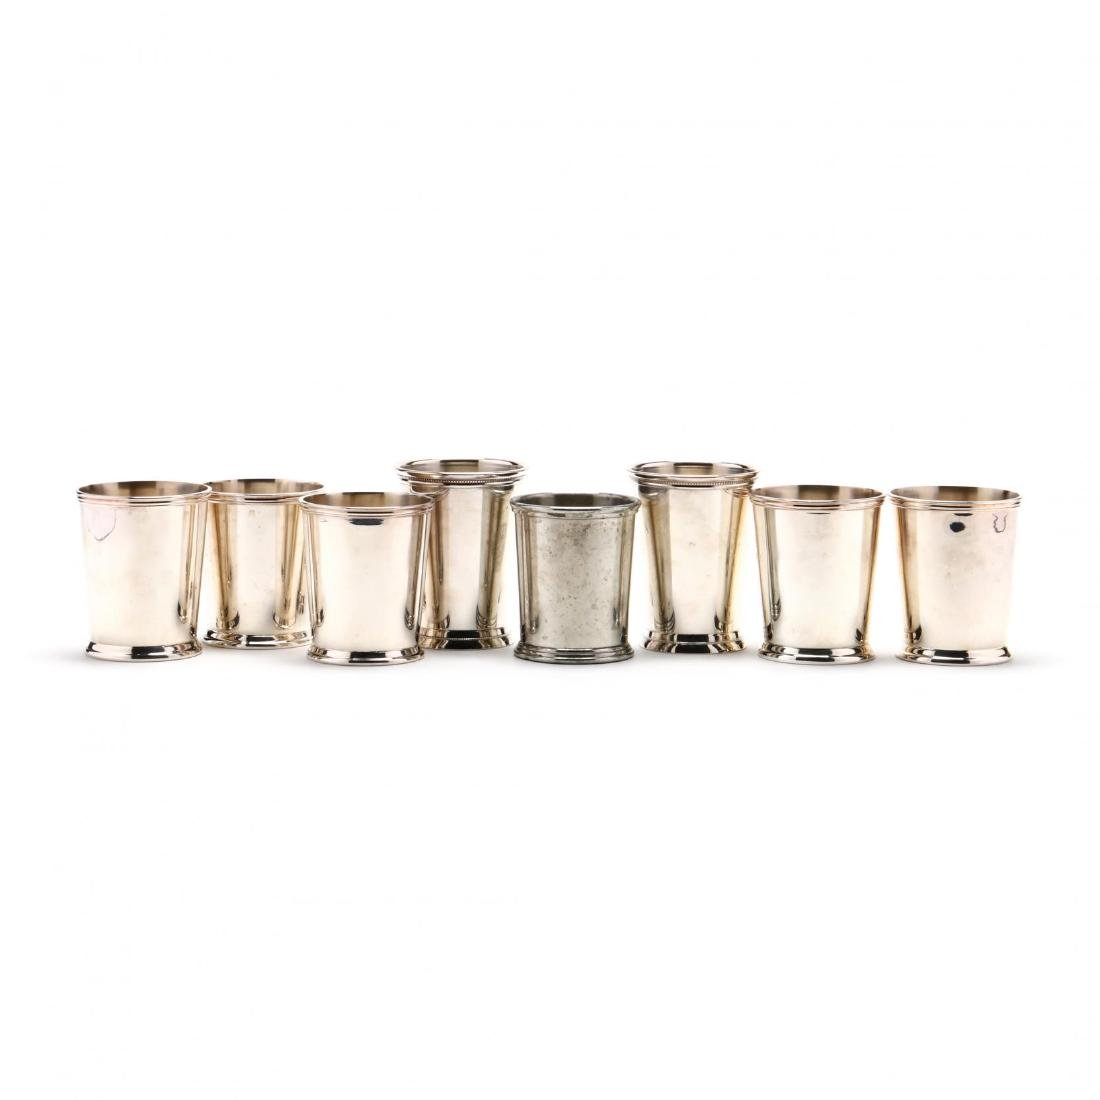 Eight Silverplate and Pewter Mint Juleps - 2